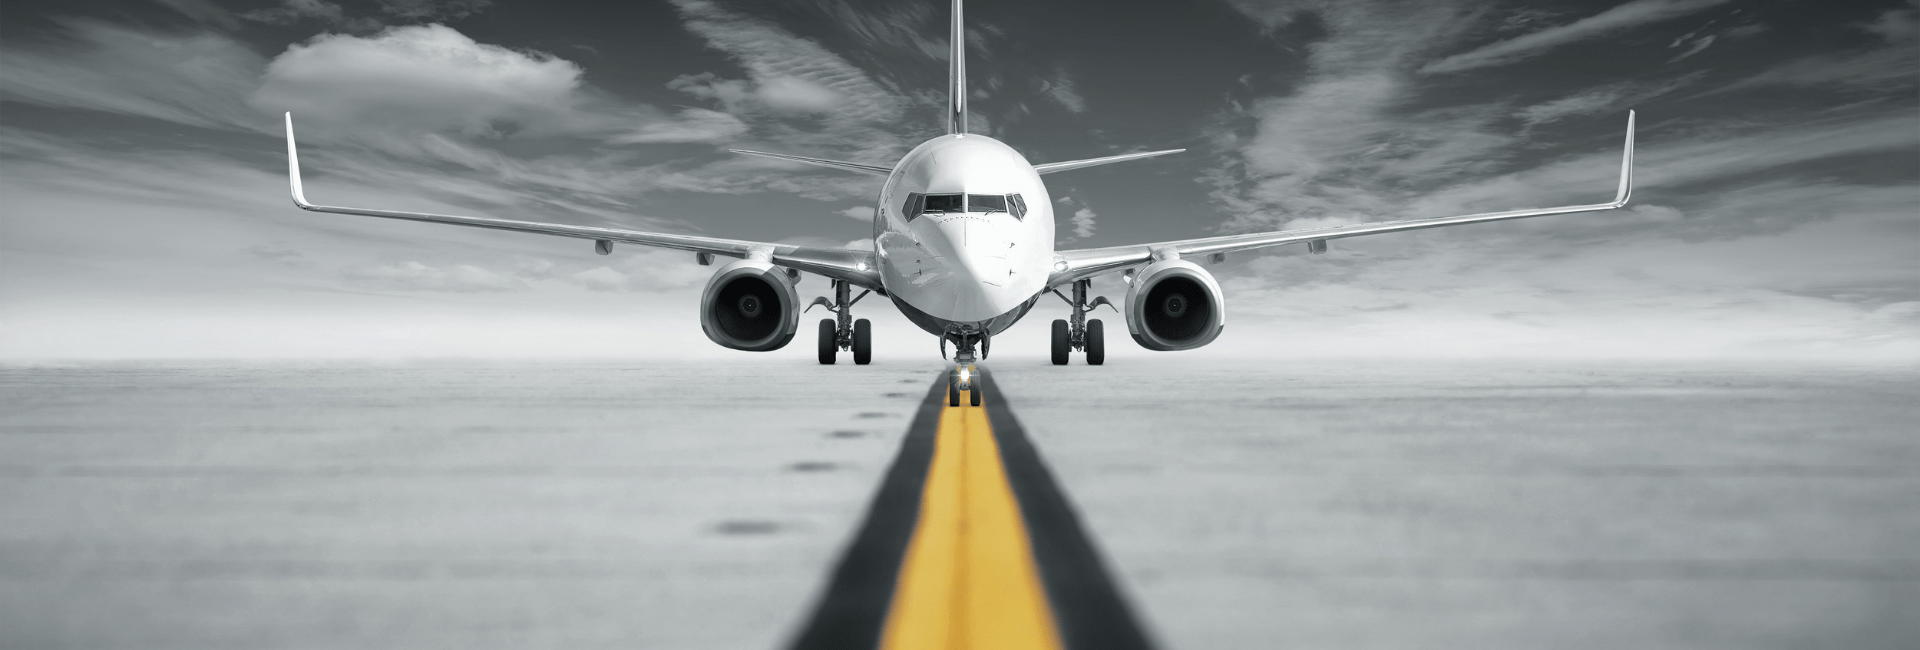 [eBook] Why OLED is an Ideal Light Source for Aerospace Applications